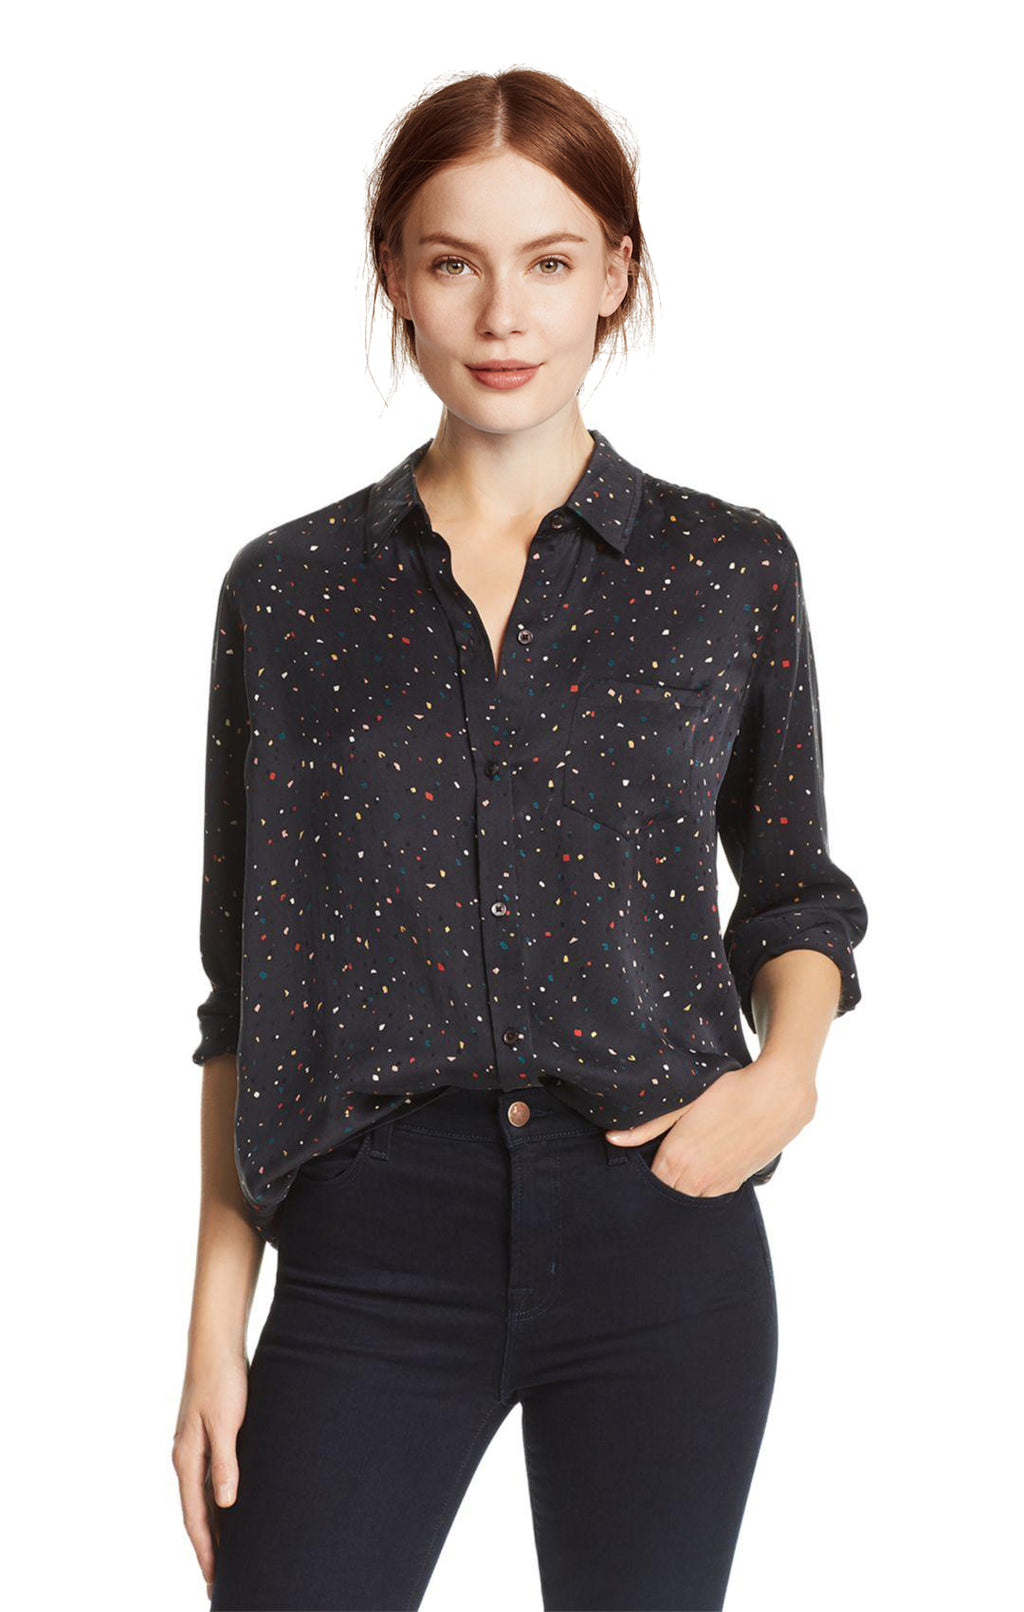 Buy Kate Silk Shirt from RAILS CLOTHING at PAYA boutique